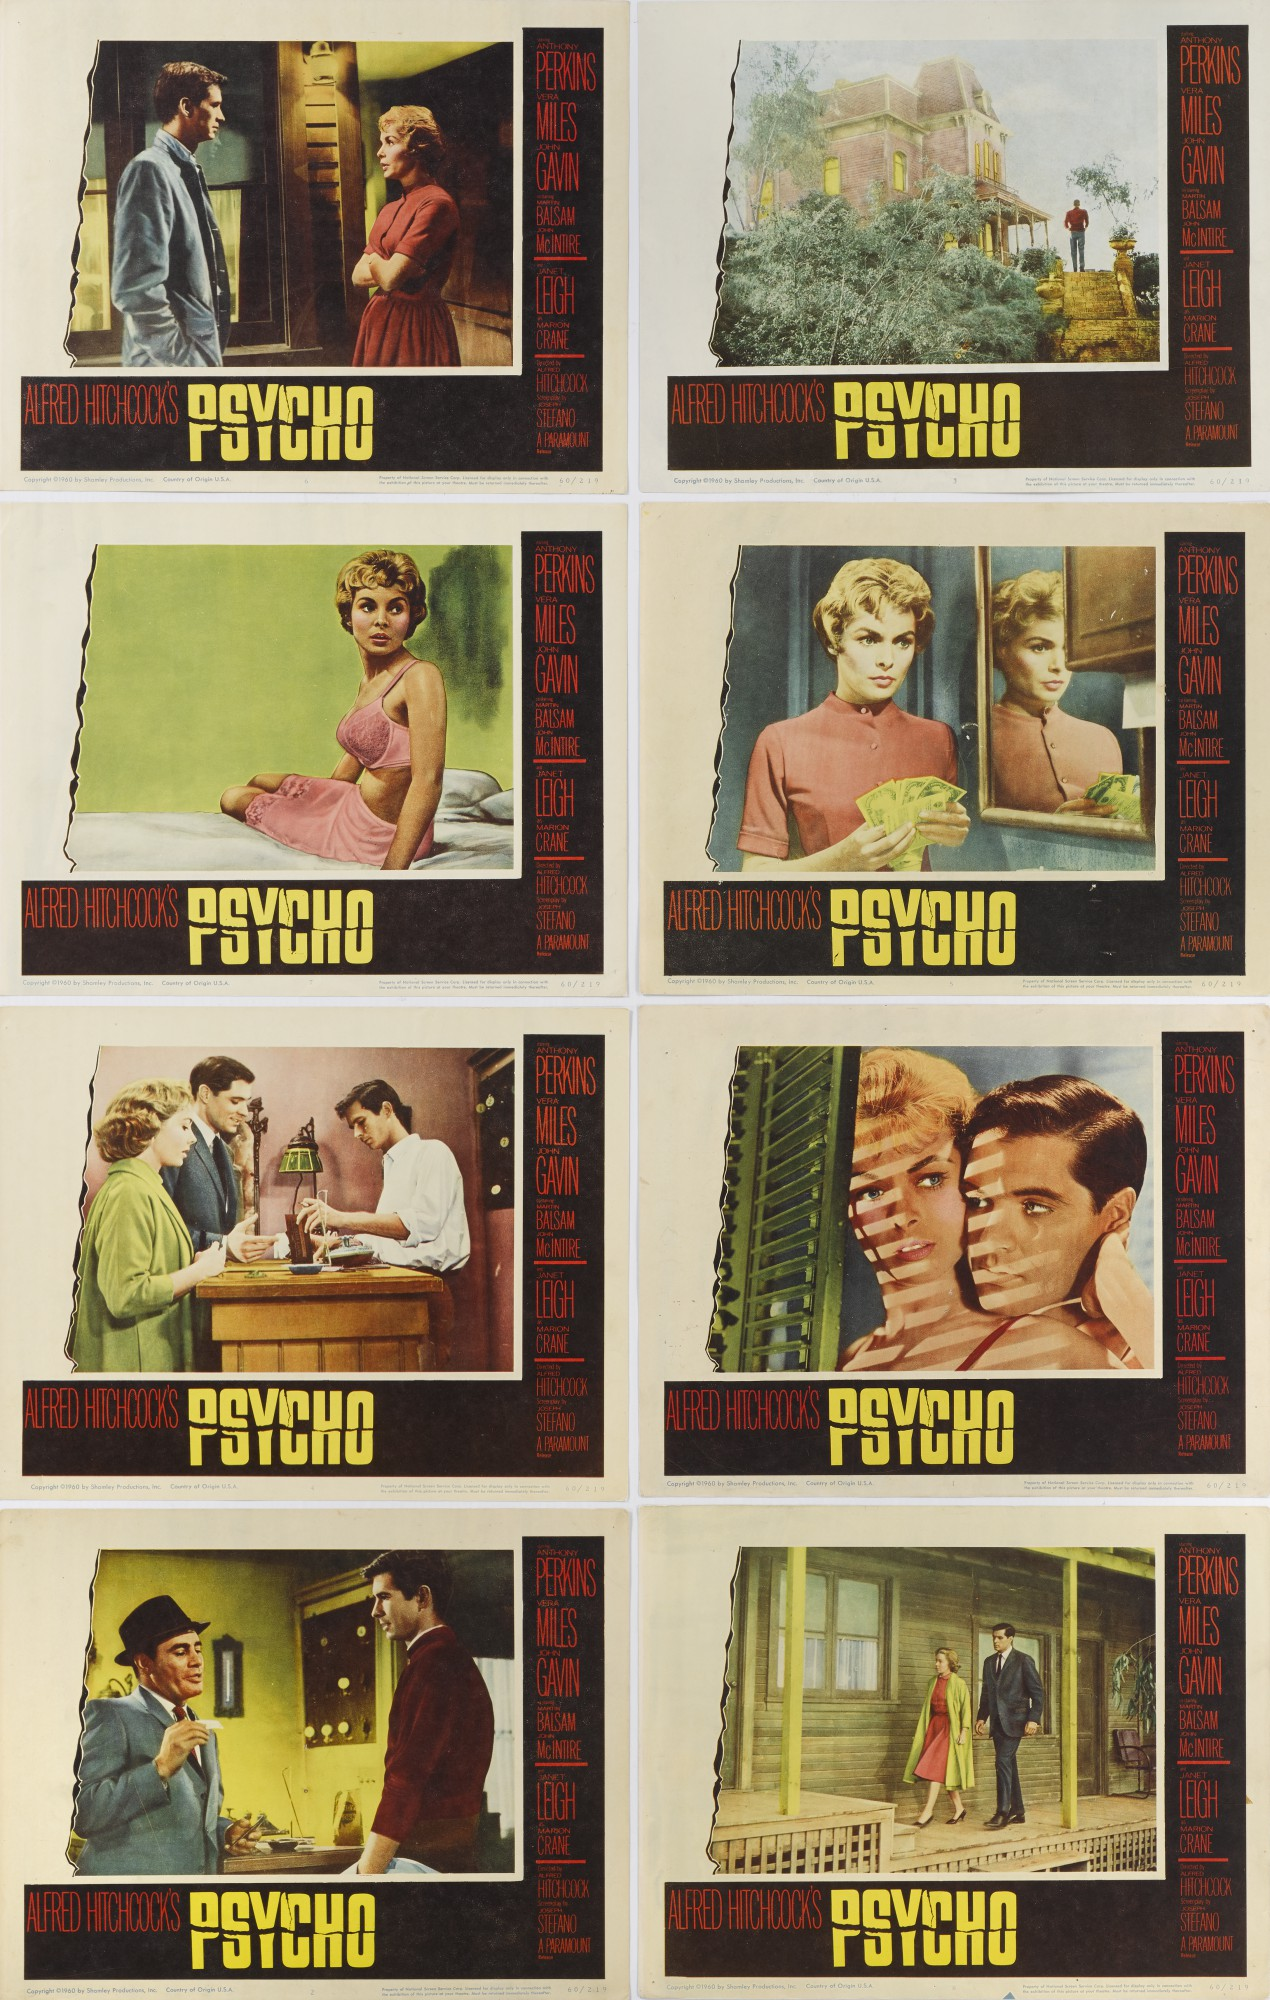 PSYCHO (1960) COMPLETE SET OF LOBBY CARDS, US